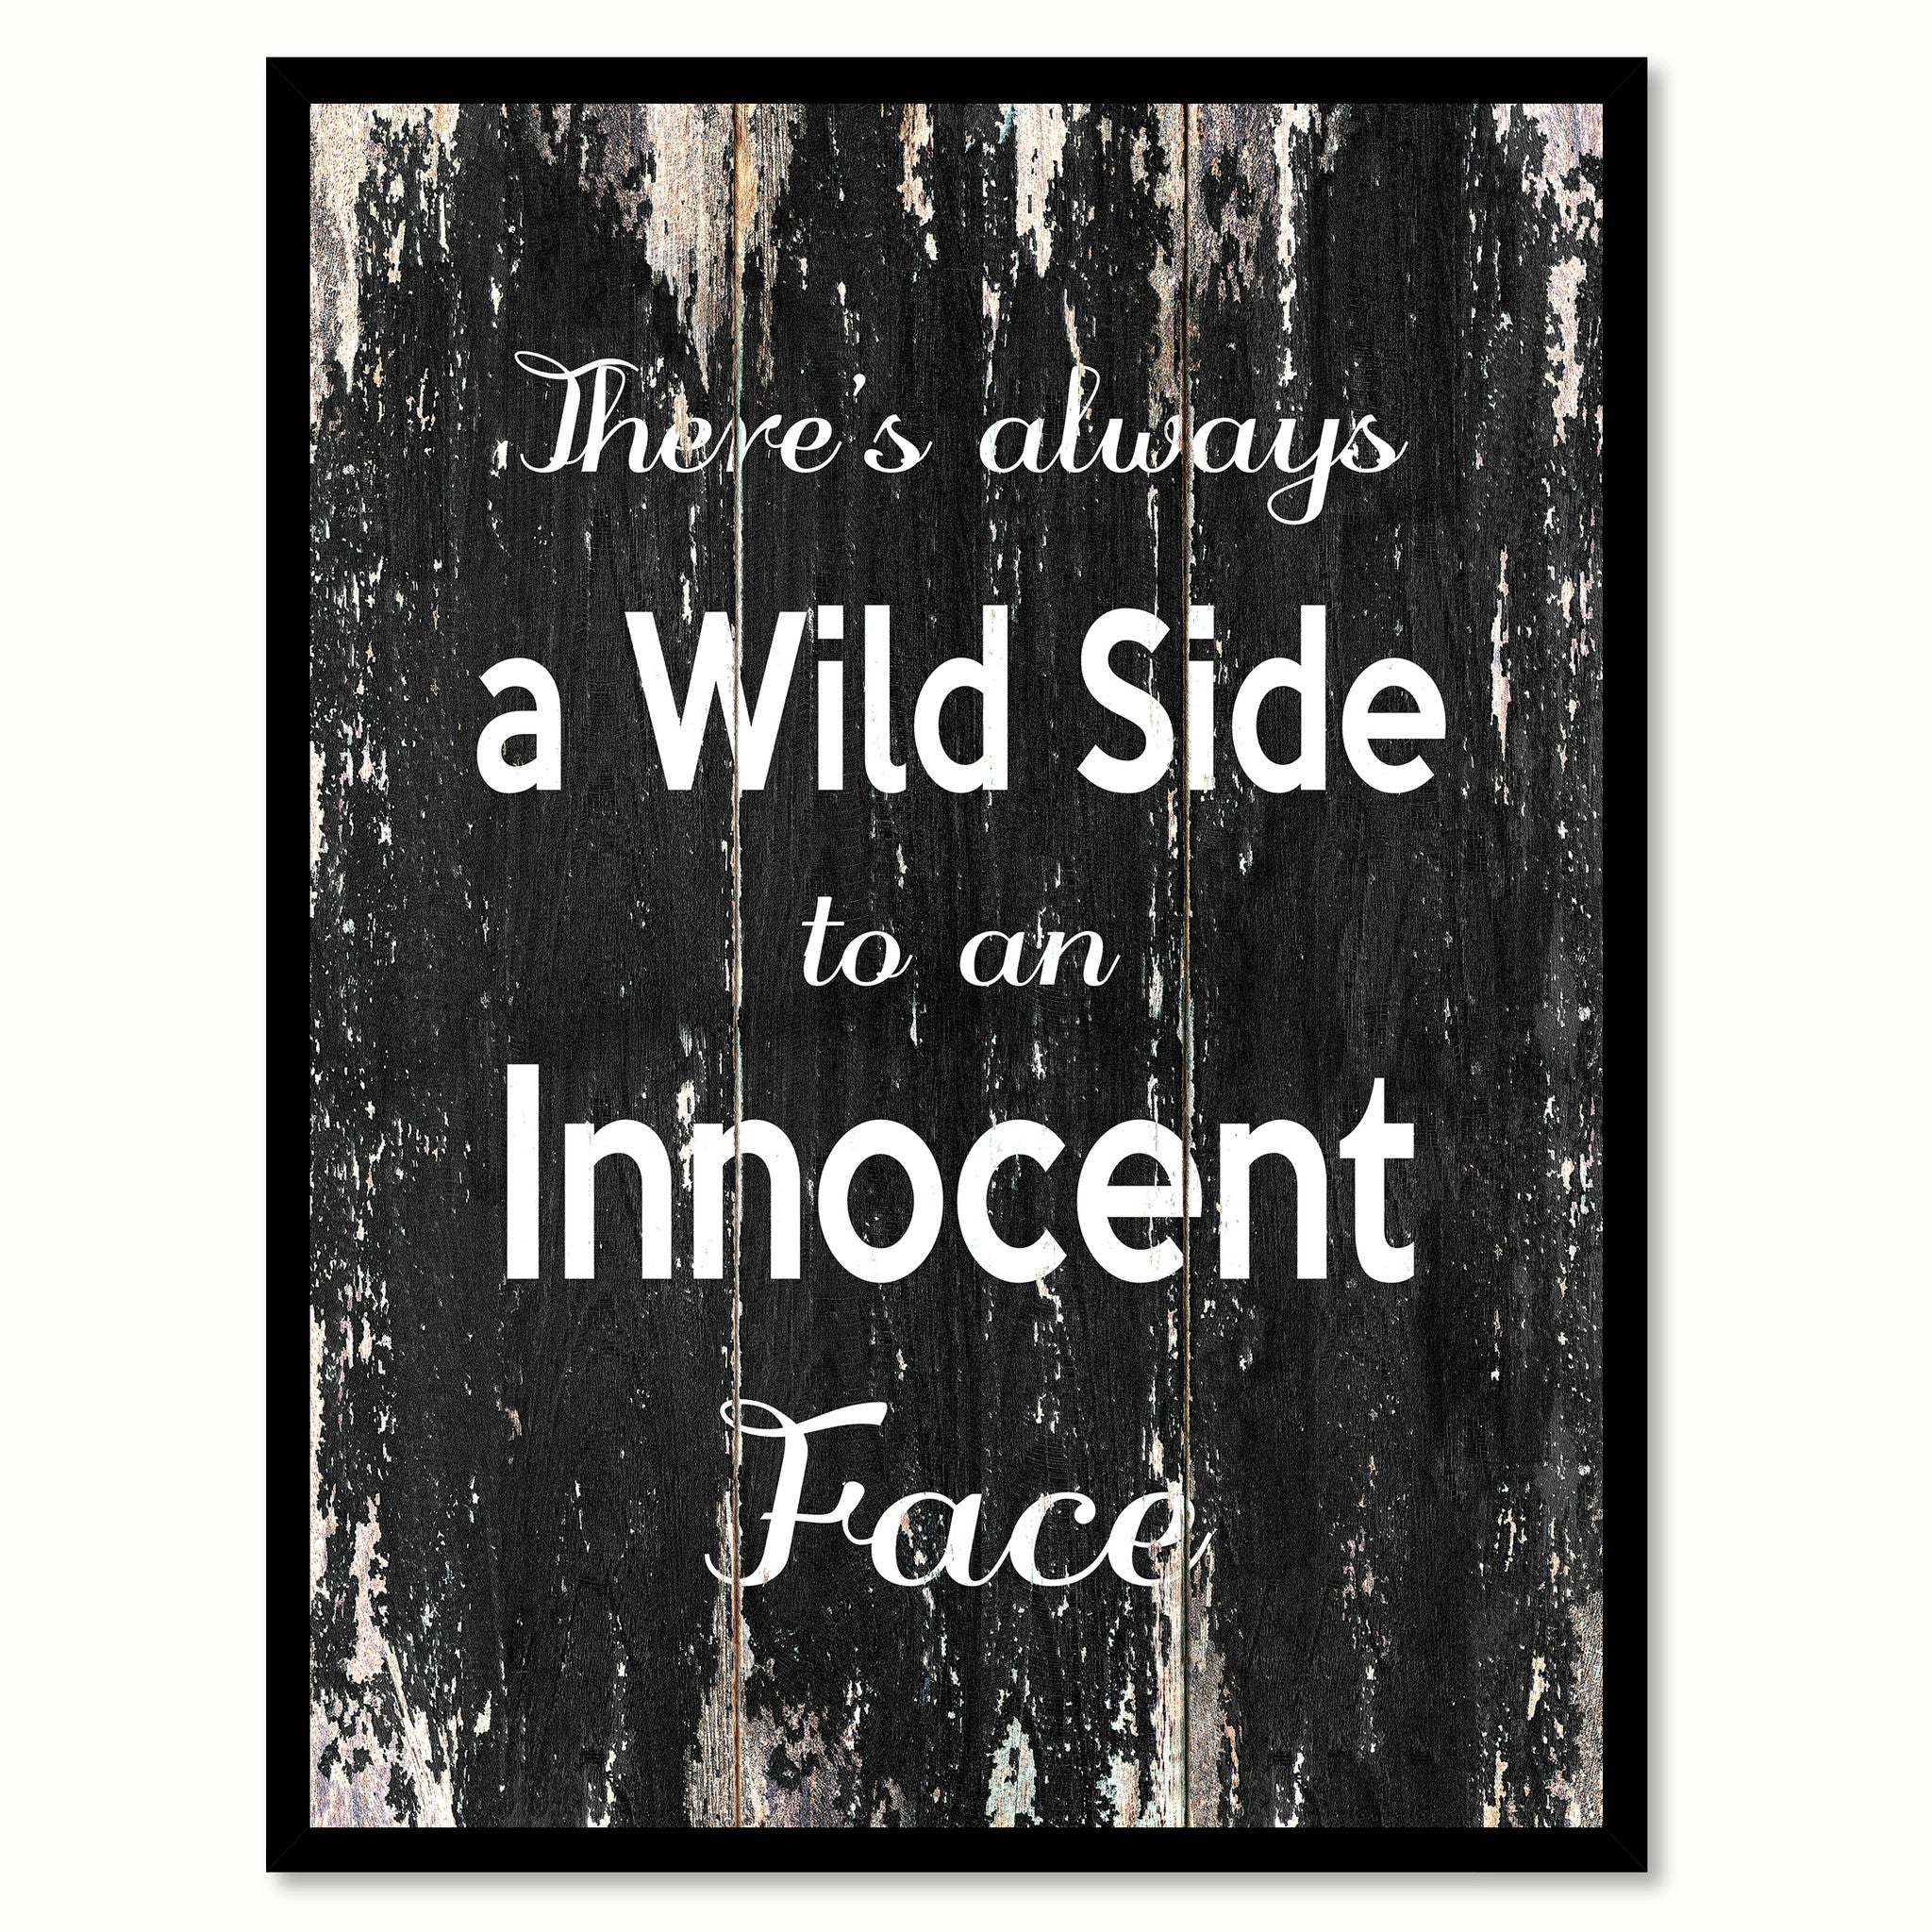 There's always a wild side to an innocent face Motivational Quote Saying Canvas Print with Picture Frame Home Decor Wall Art